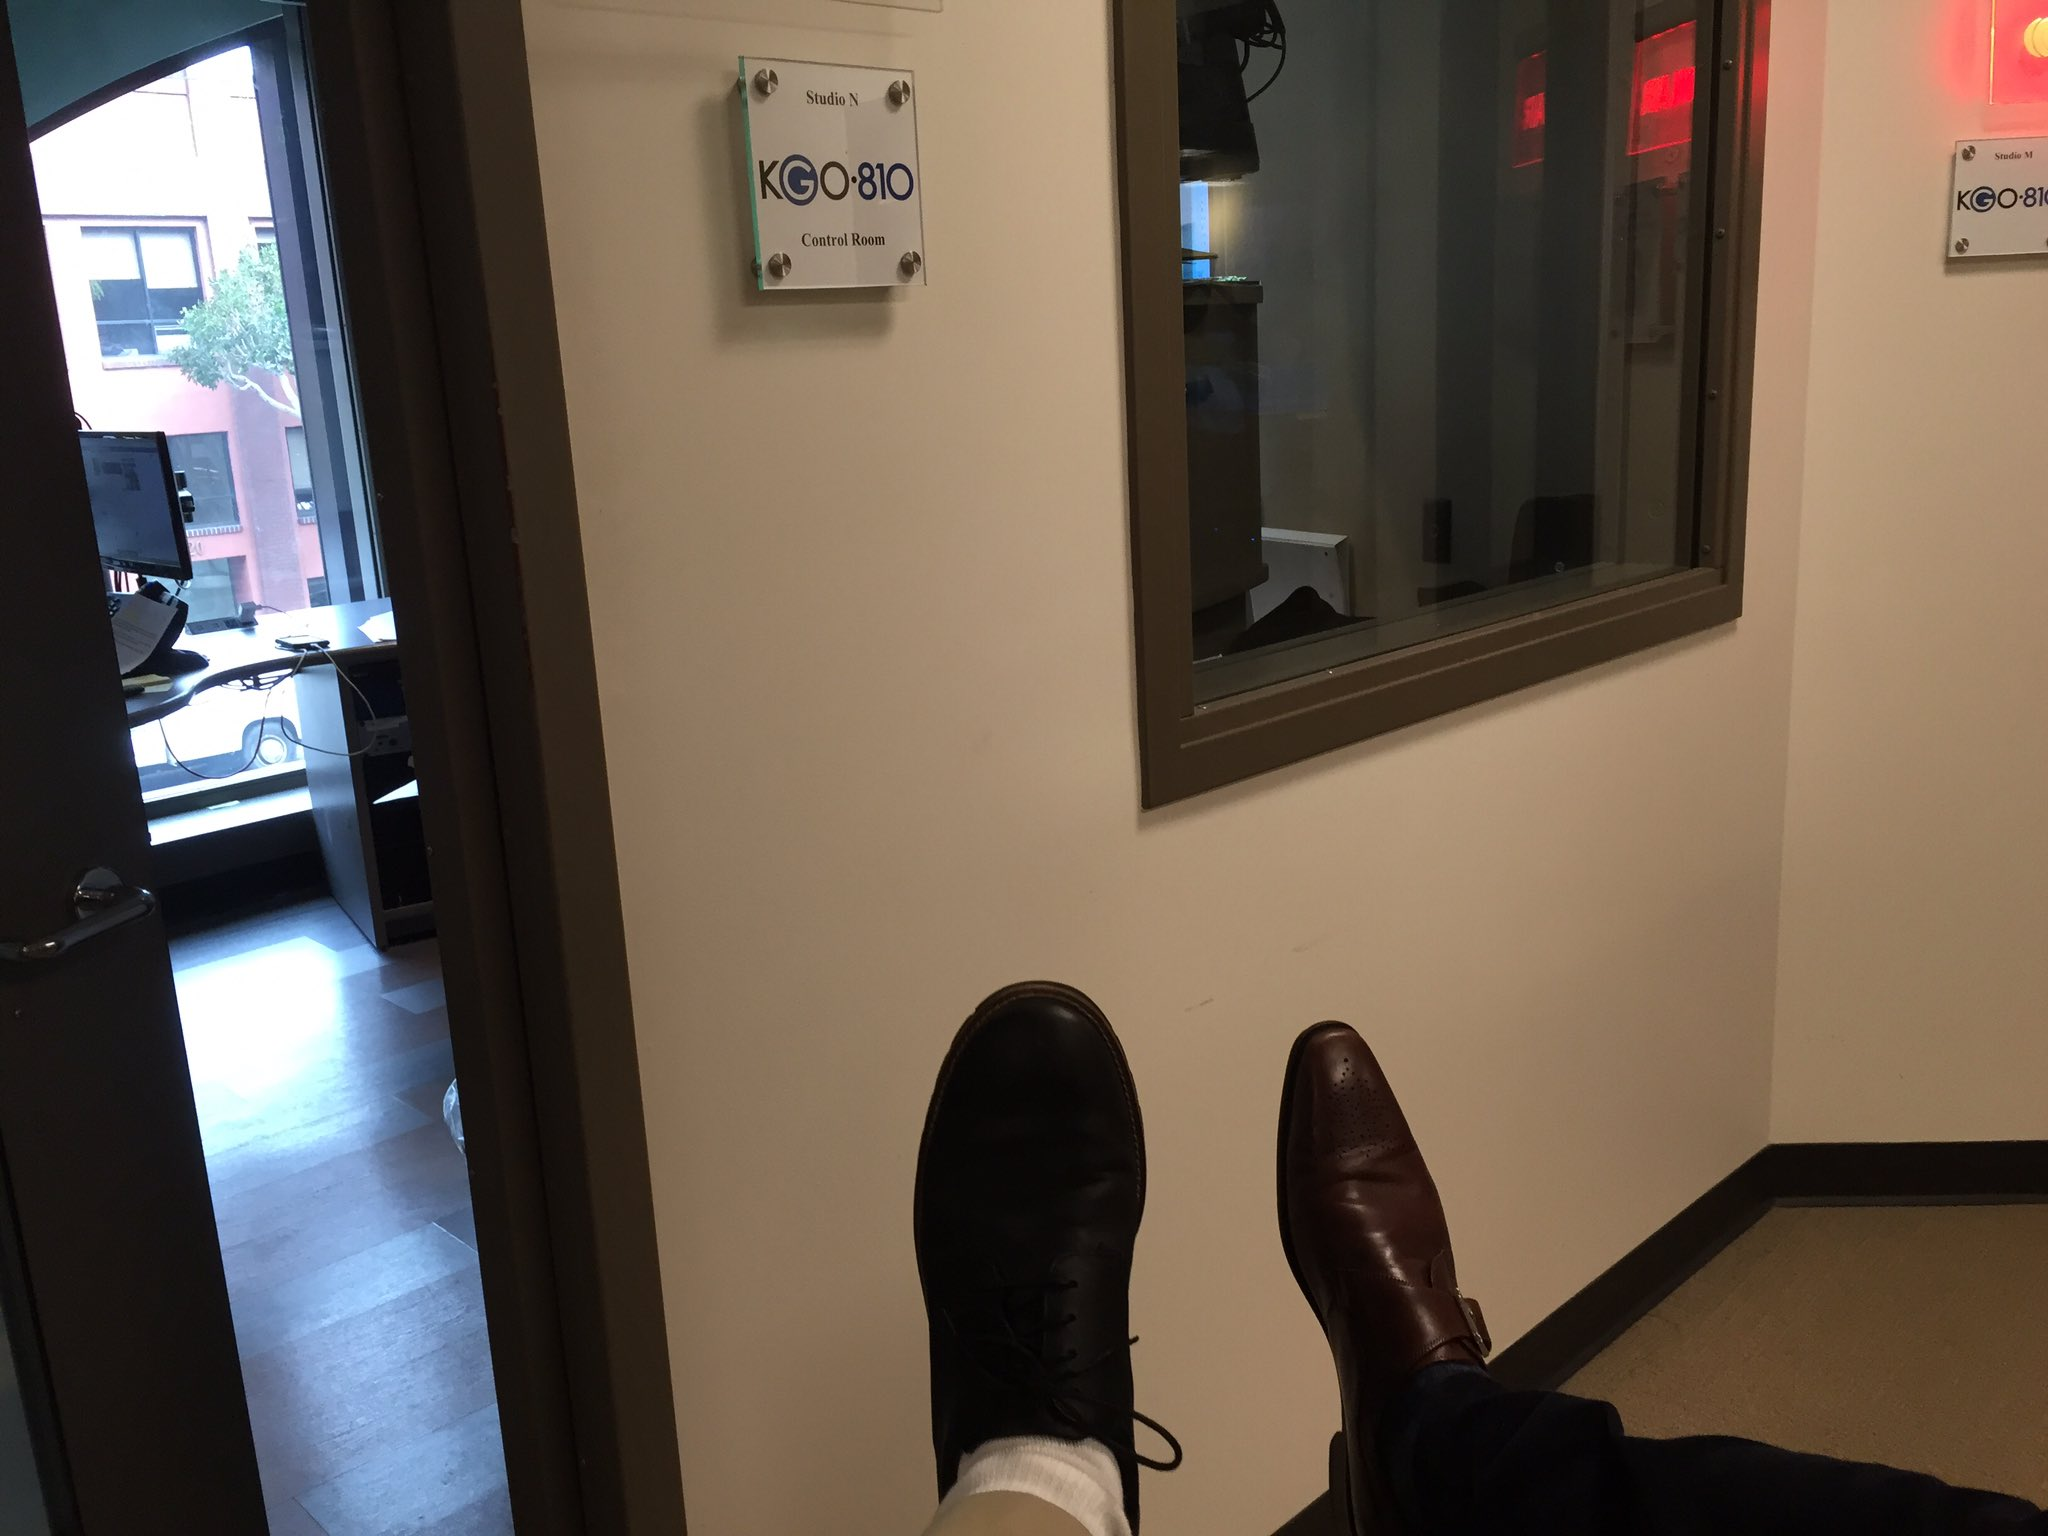 We're #swalwelling with @RepSwalwell on the @ronnowens program at 11am on @KGO810 https://t.co/i3ozV7T0We